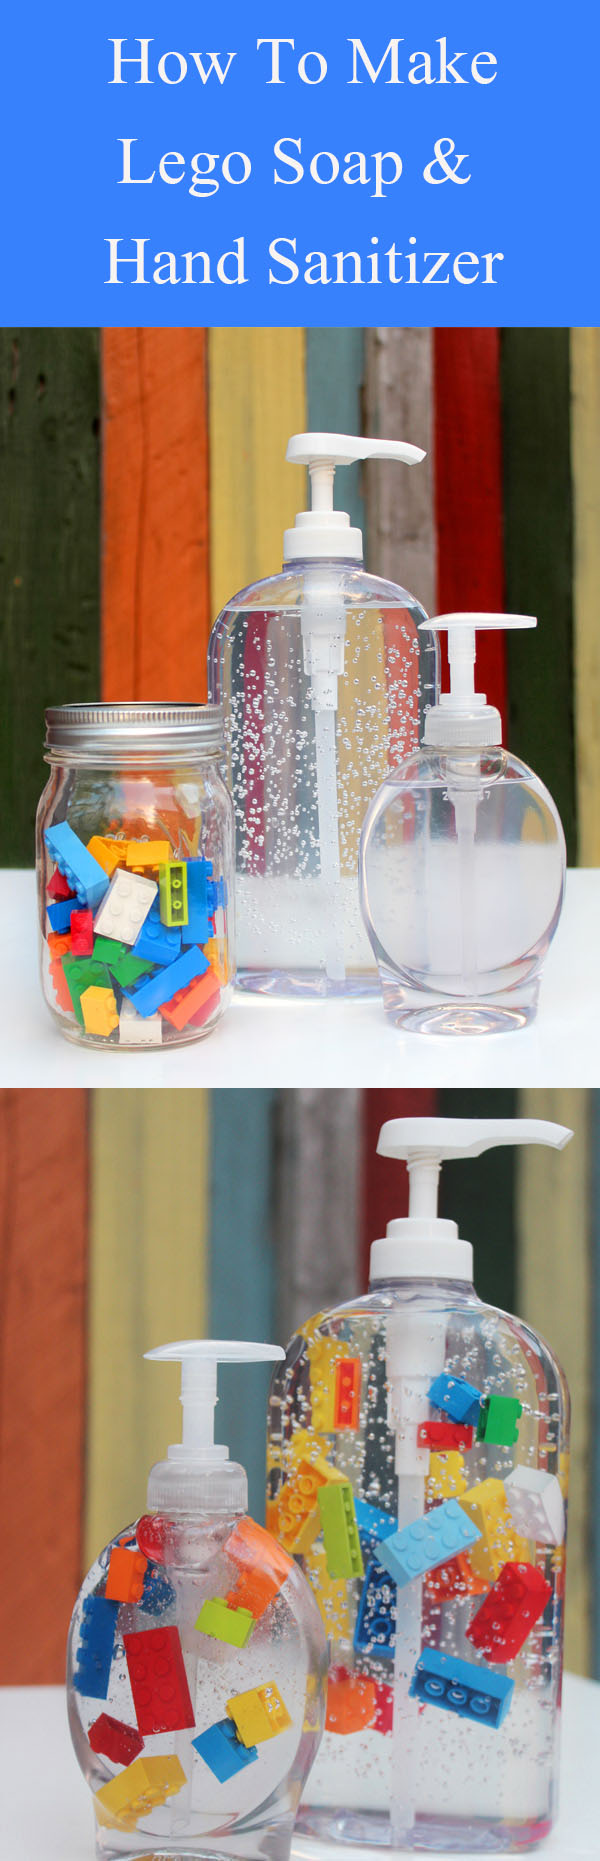 DIY Lego Soap & Hand Sanitizer